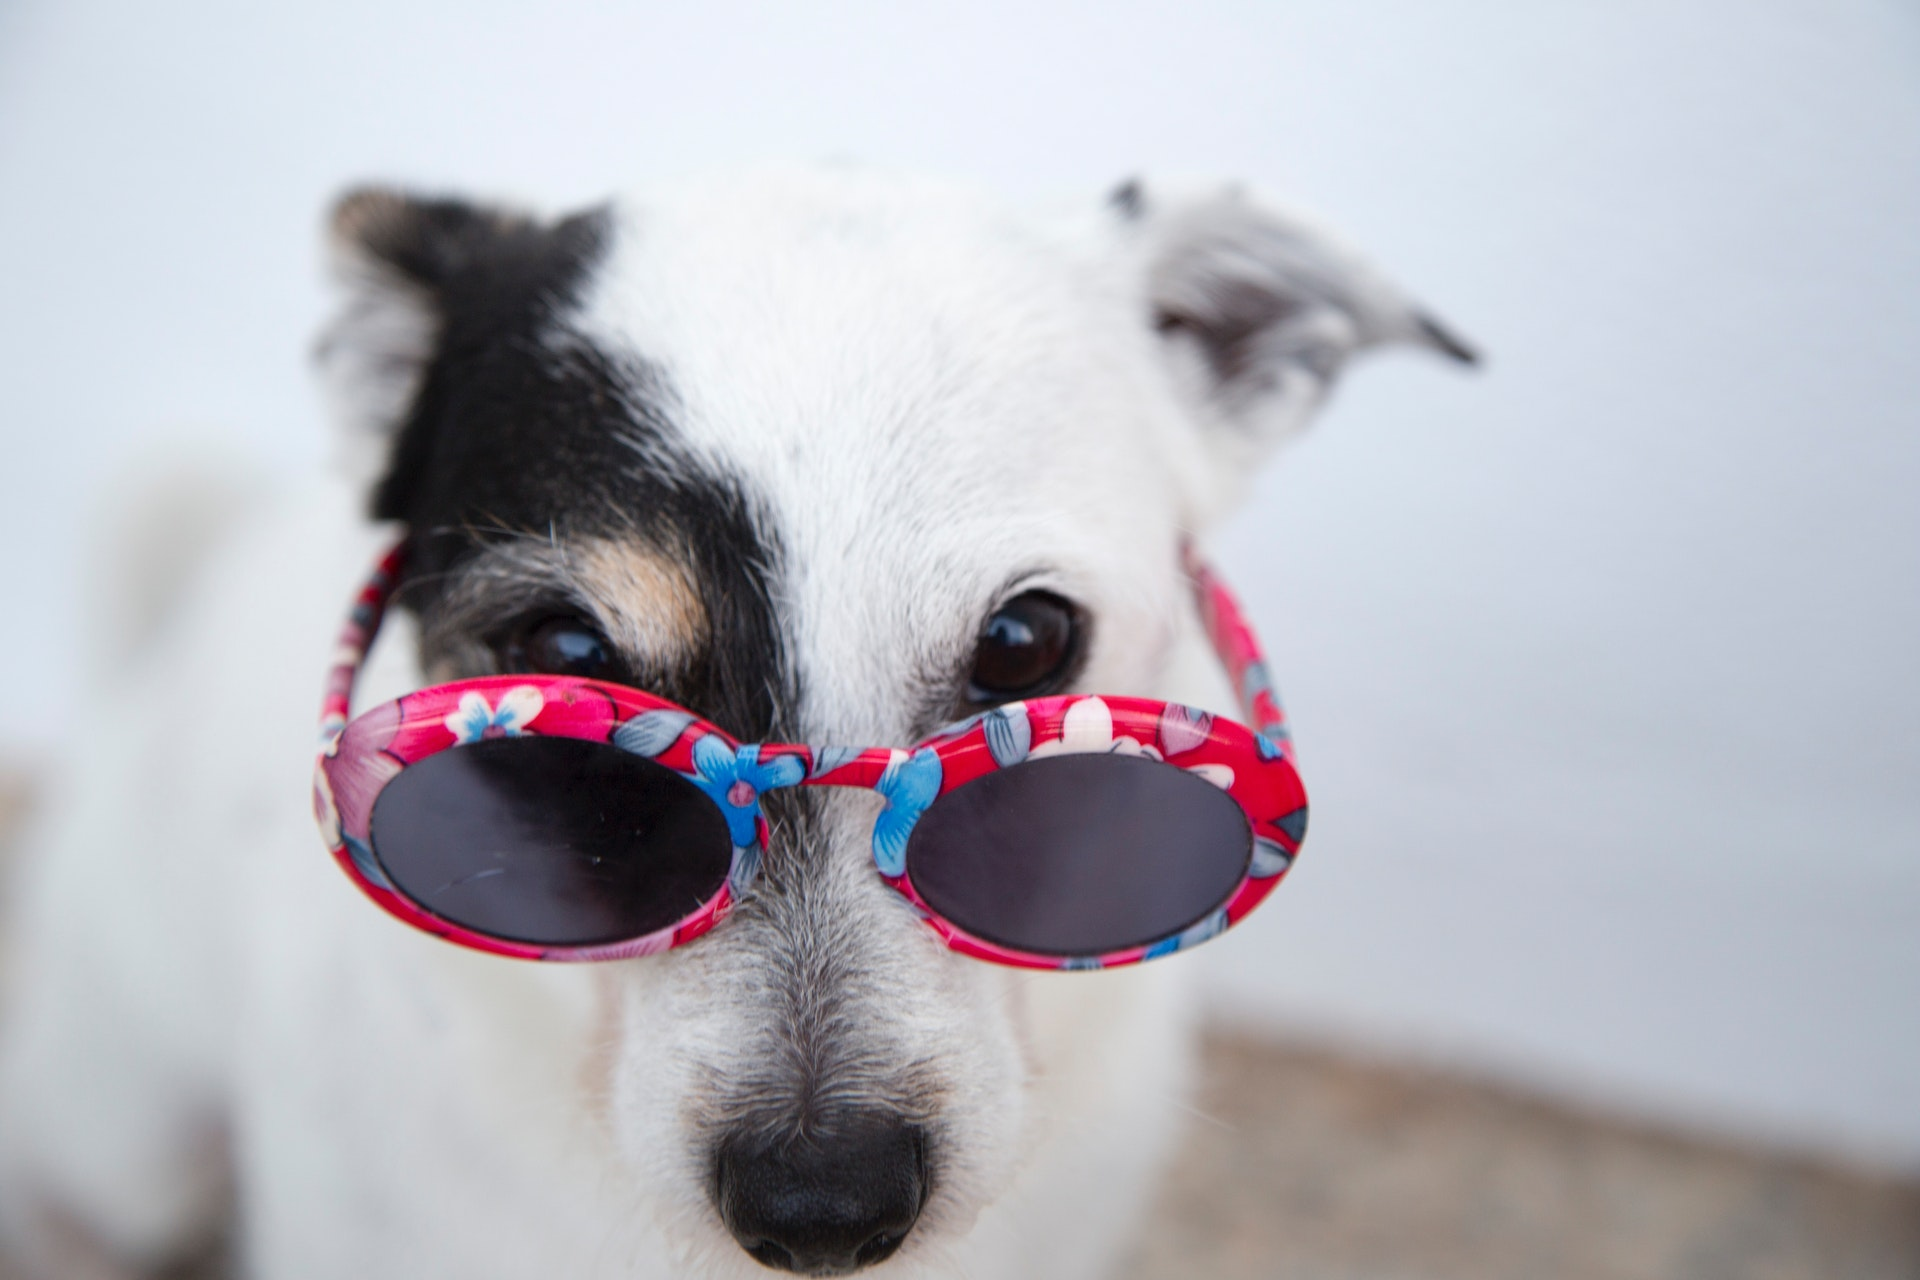 You can typically treat a dog eye infection by using a homemade mix of water and salt. Though it can be tempting to use...